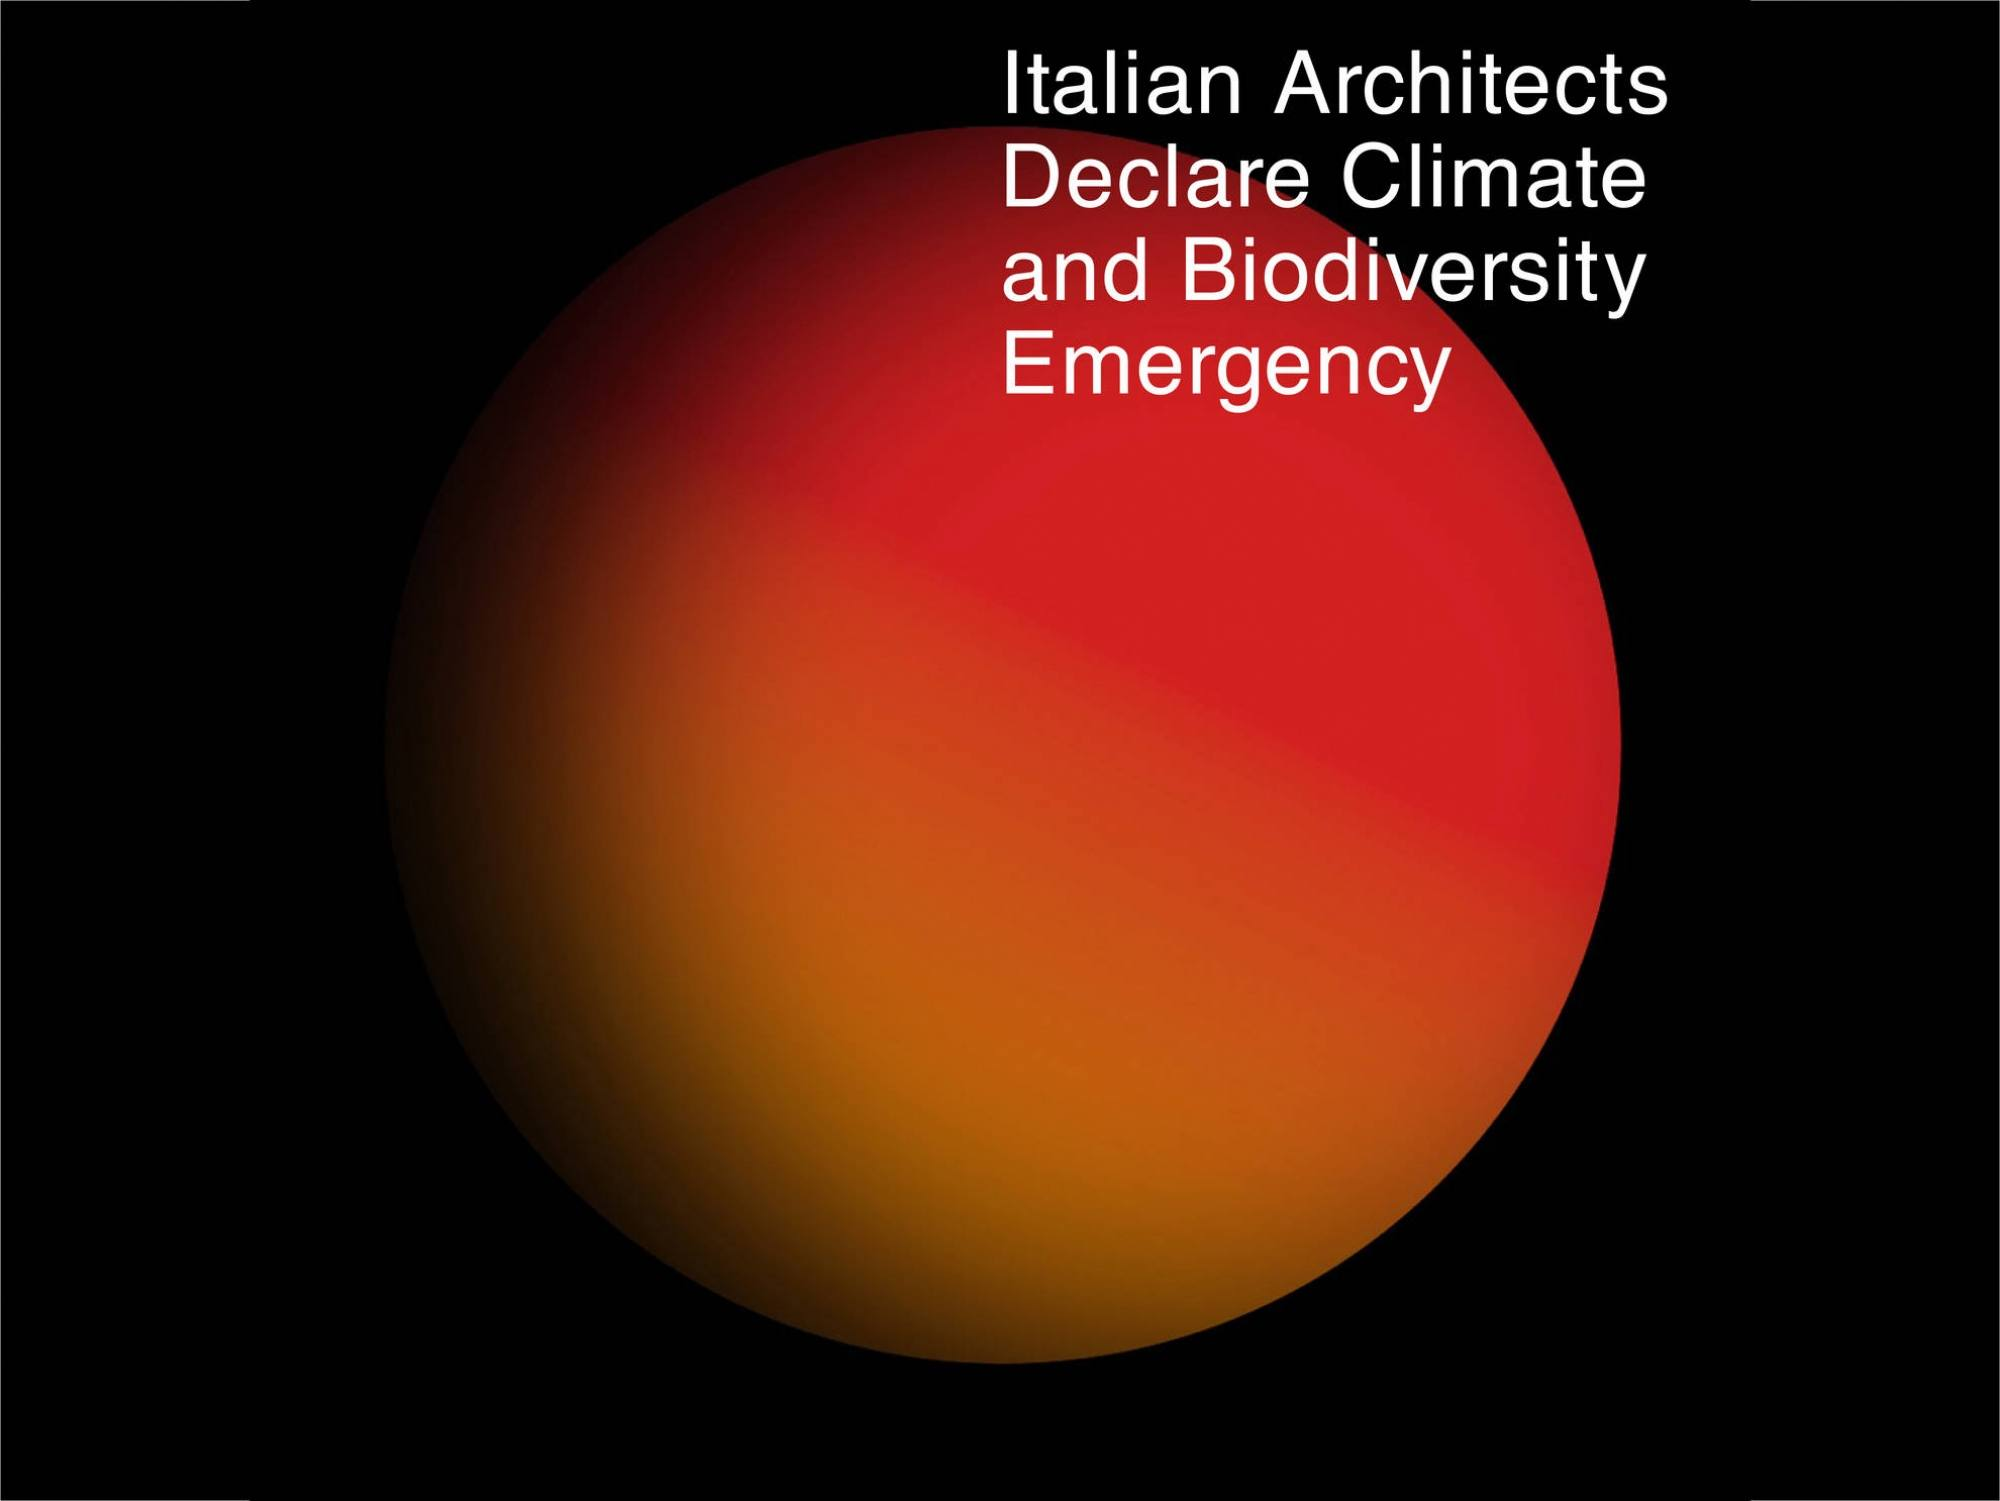 Italian Architects Declare Climate and Biodiversity Emergency